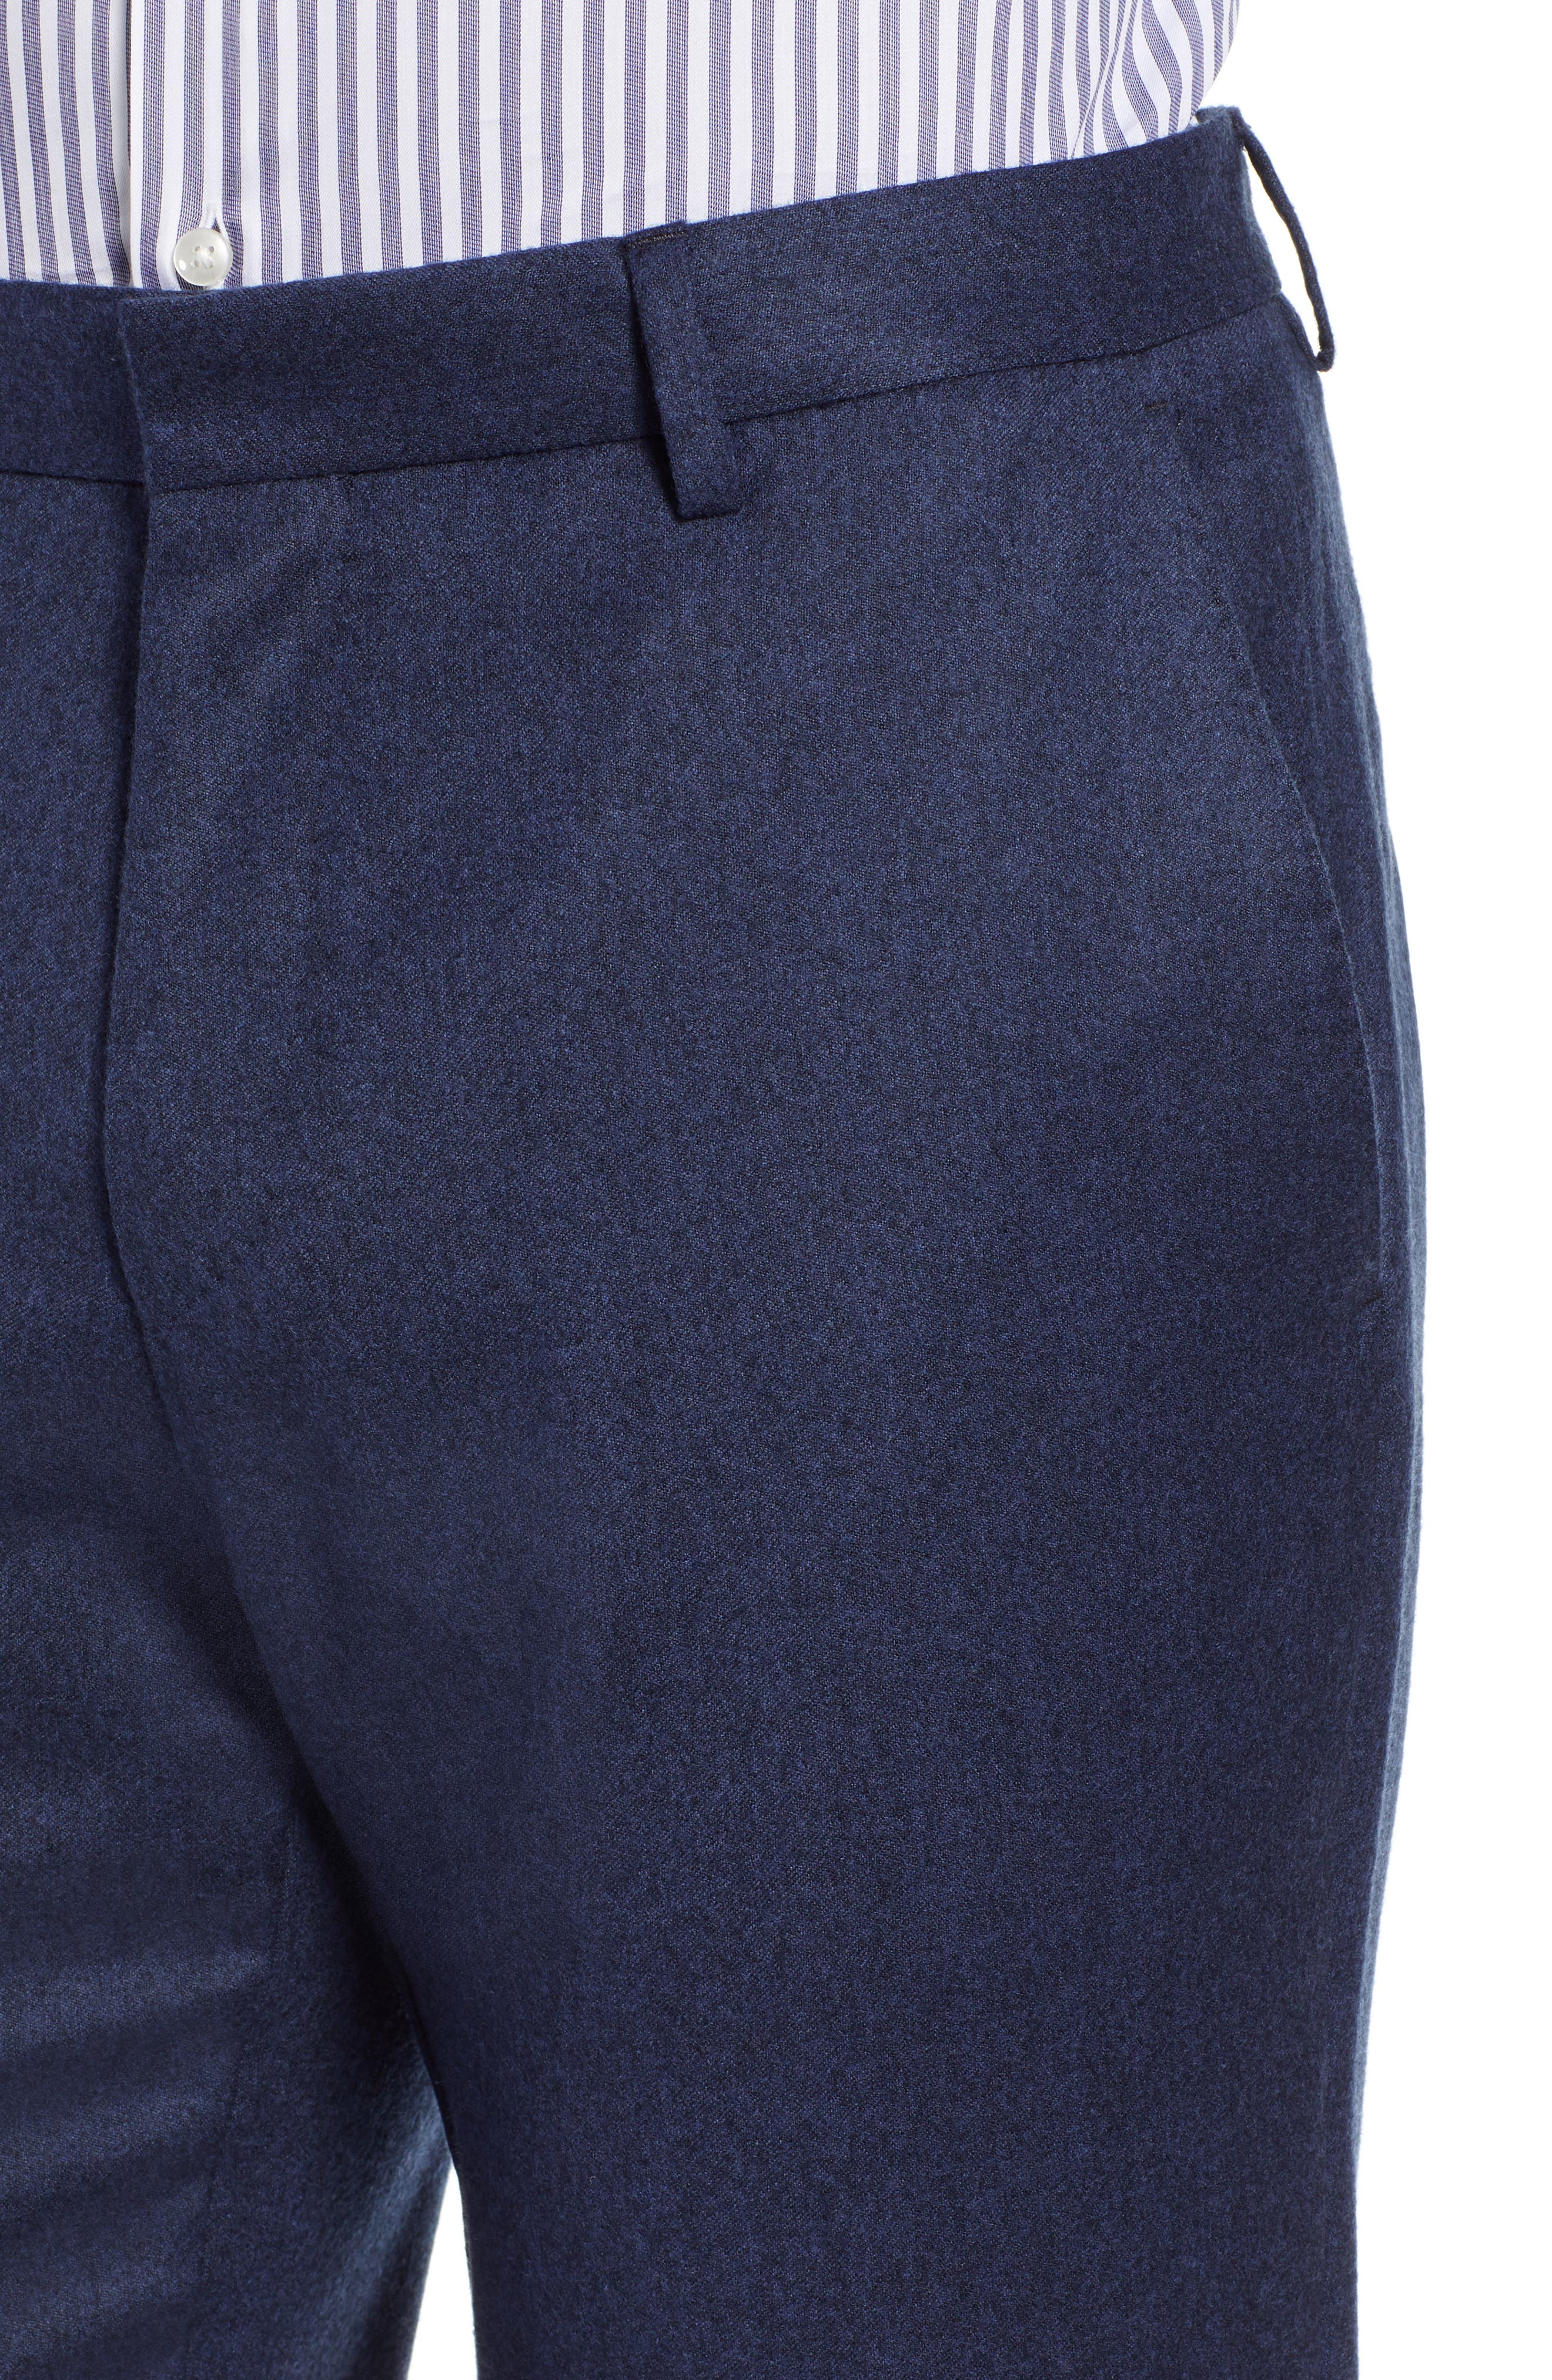 Gains Flat Front Solid Wool Trousers,                             Alternate thumbnail 4, color,                             DARK BLUE